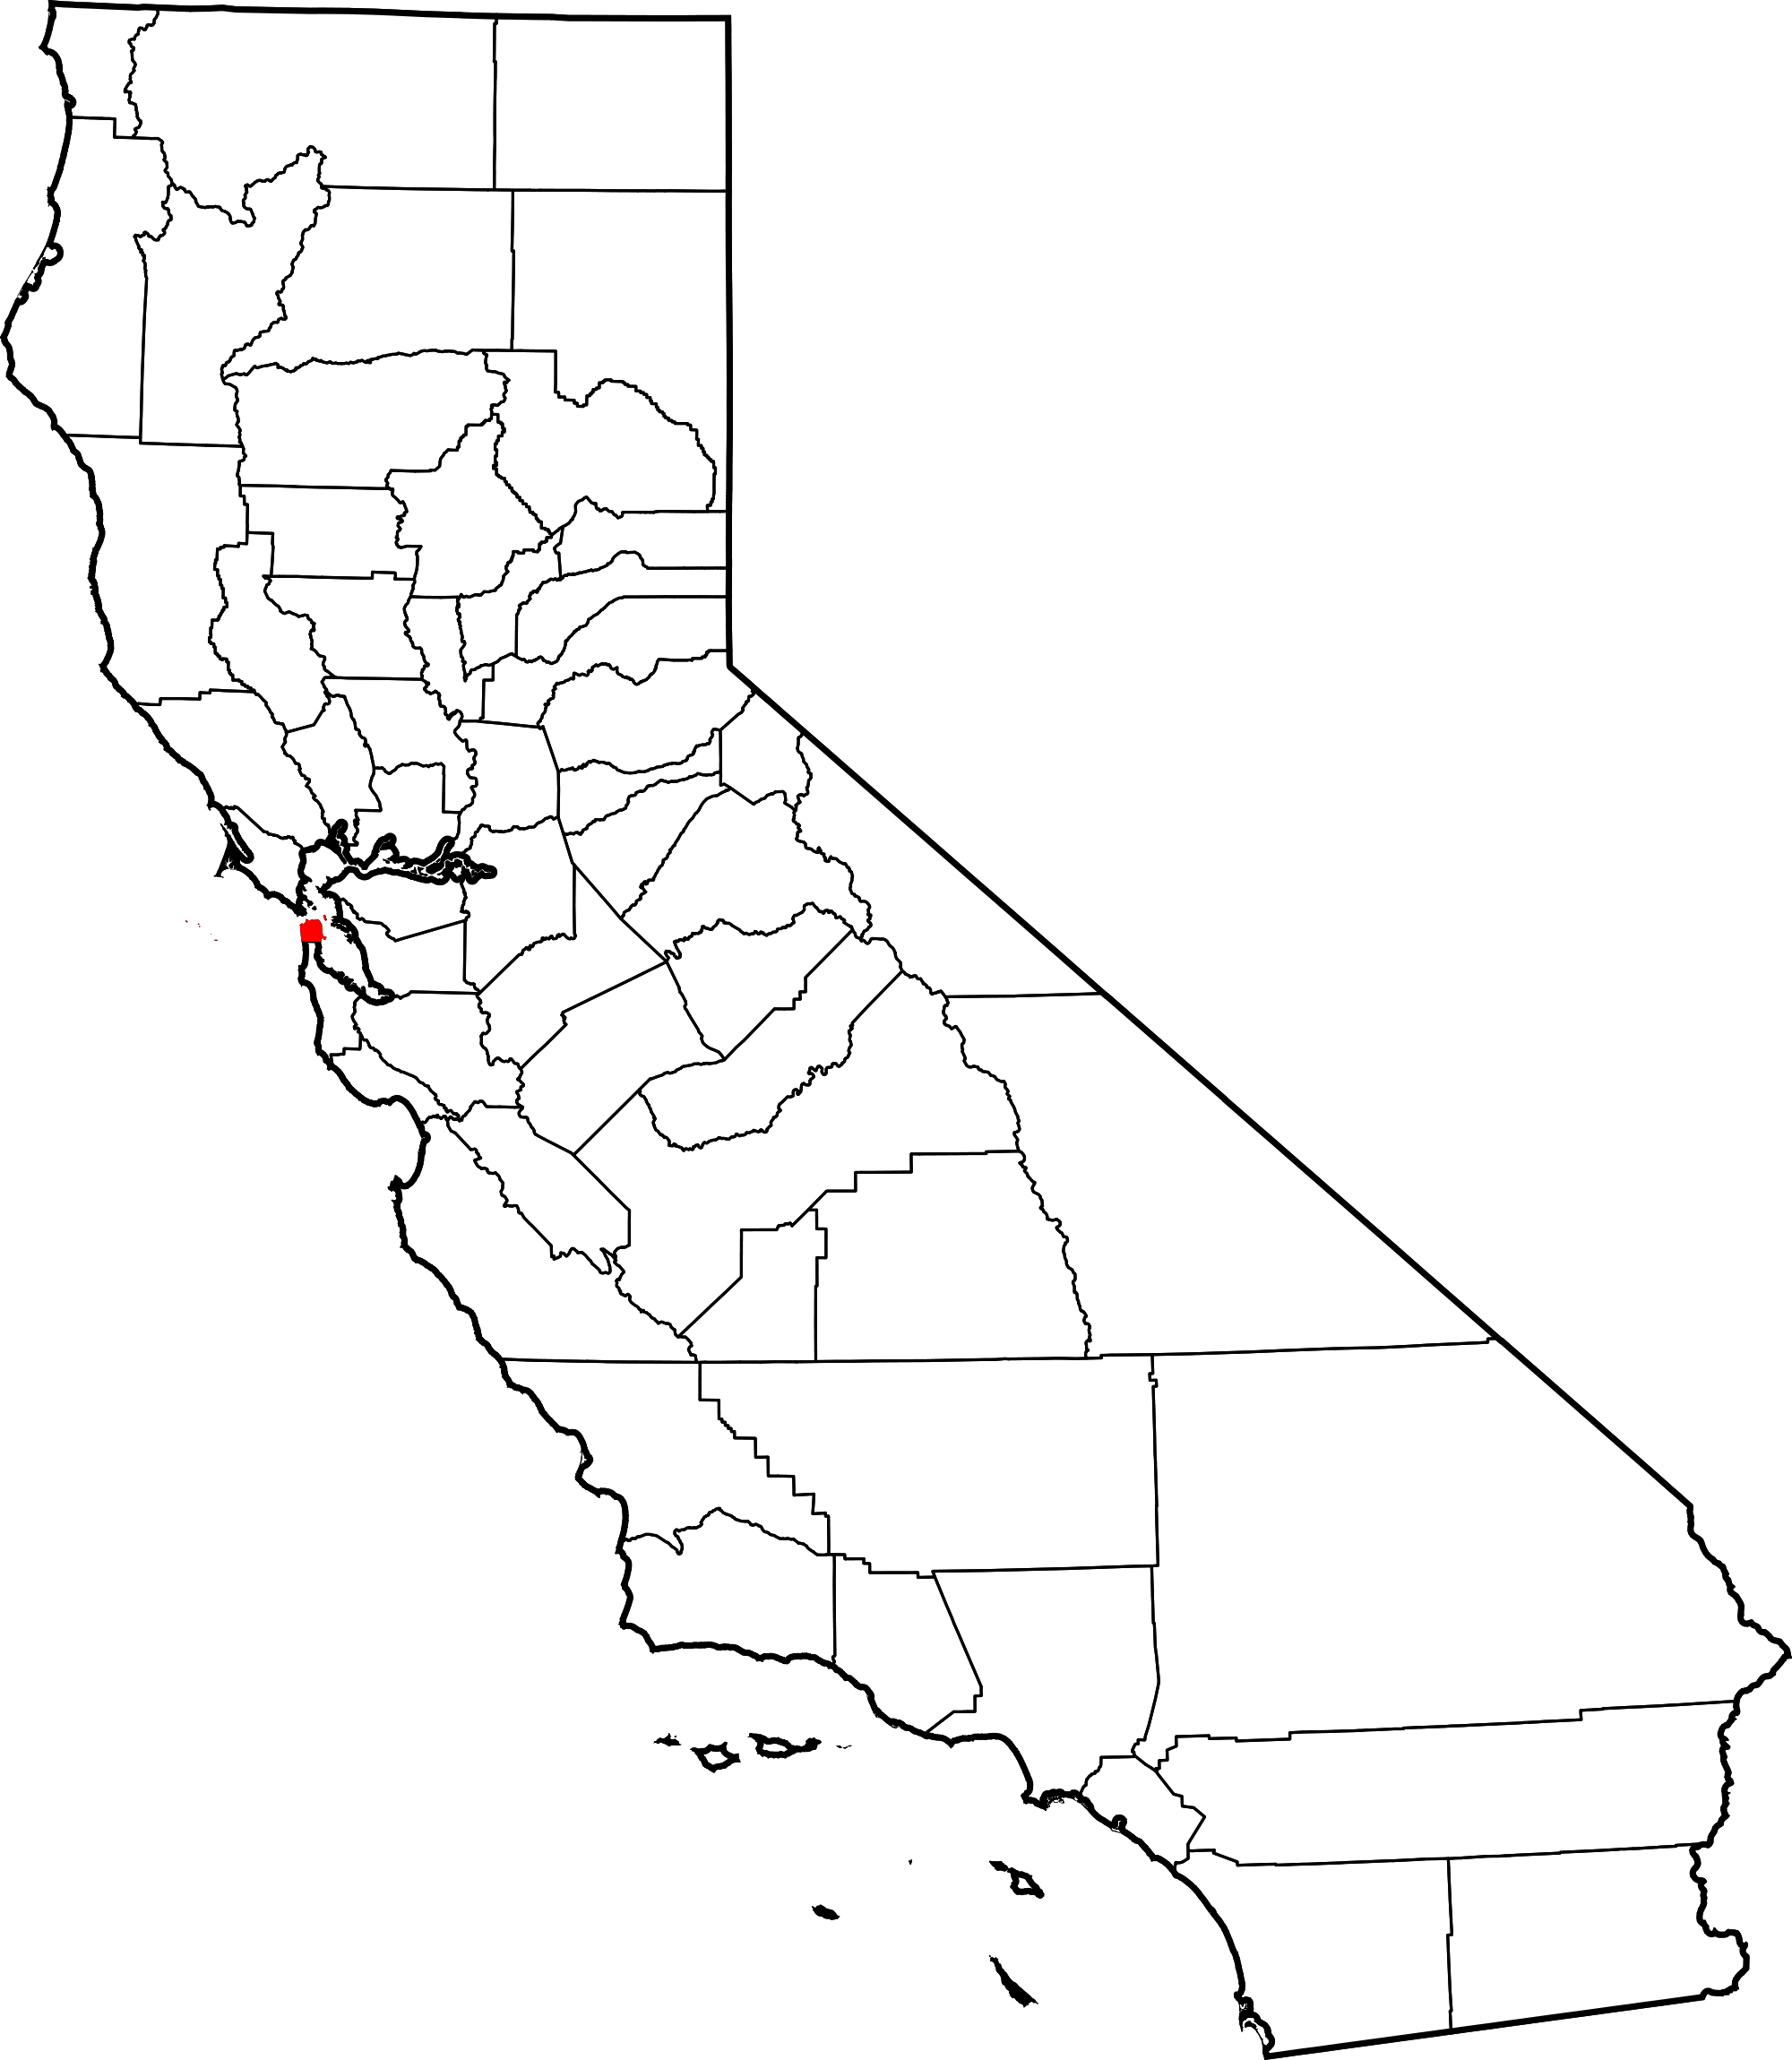 Us map highlighting california clipart clip art black and white download California Map Drawing at GetDrawings.com | Free for personal use ... clip art black and white download